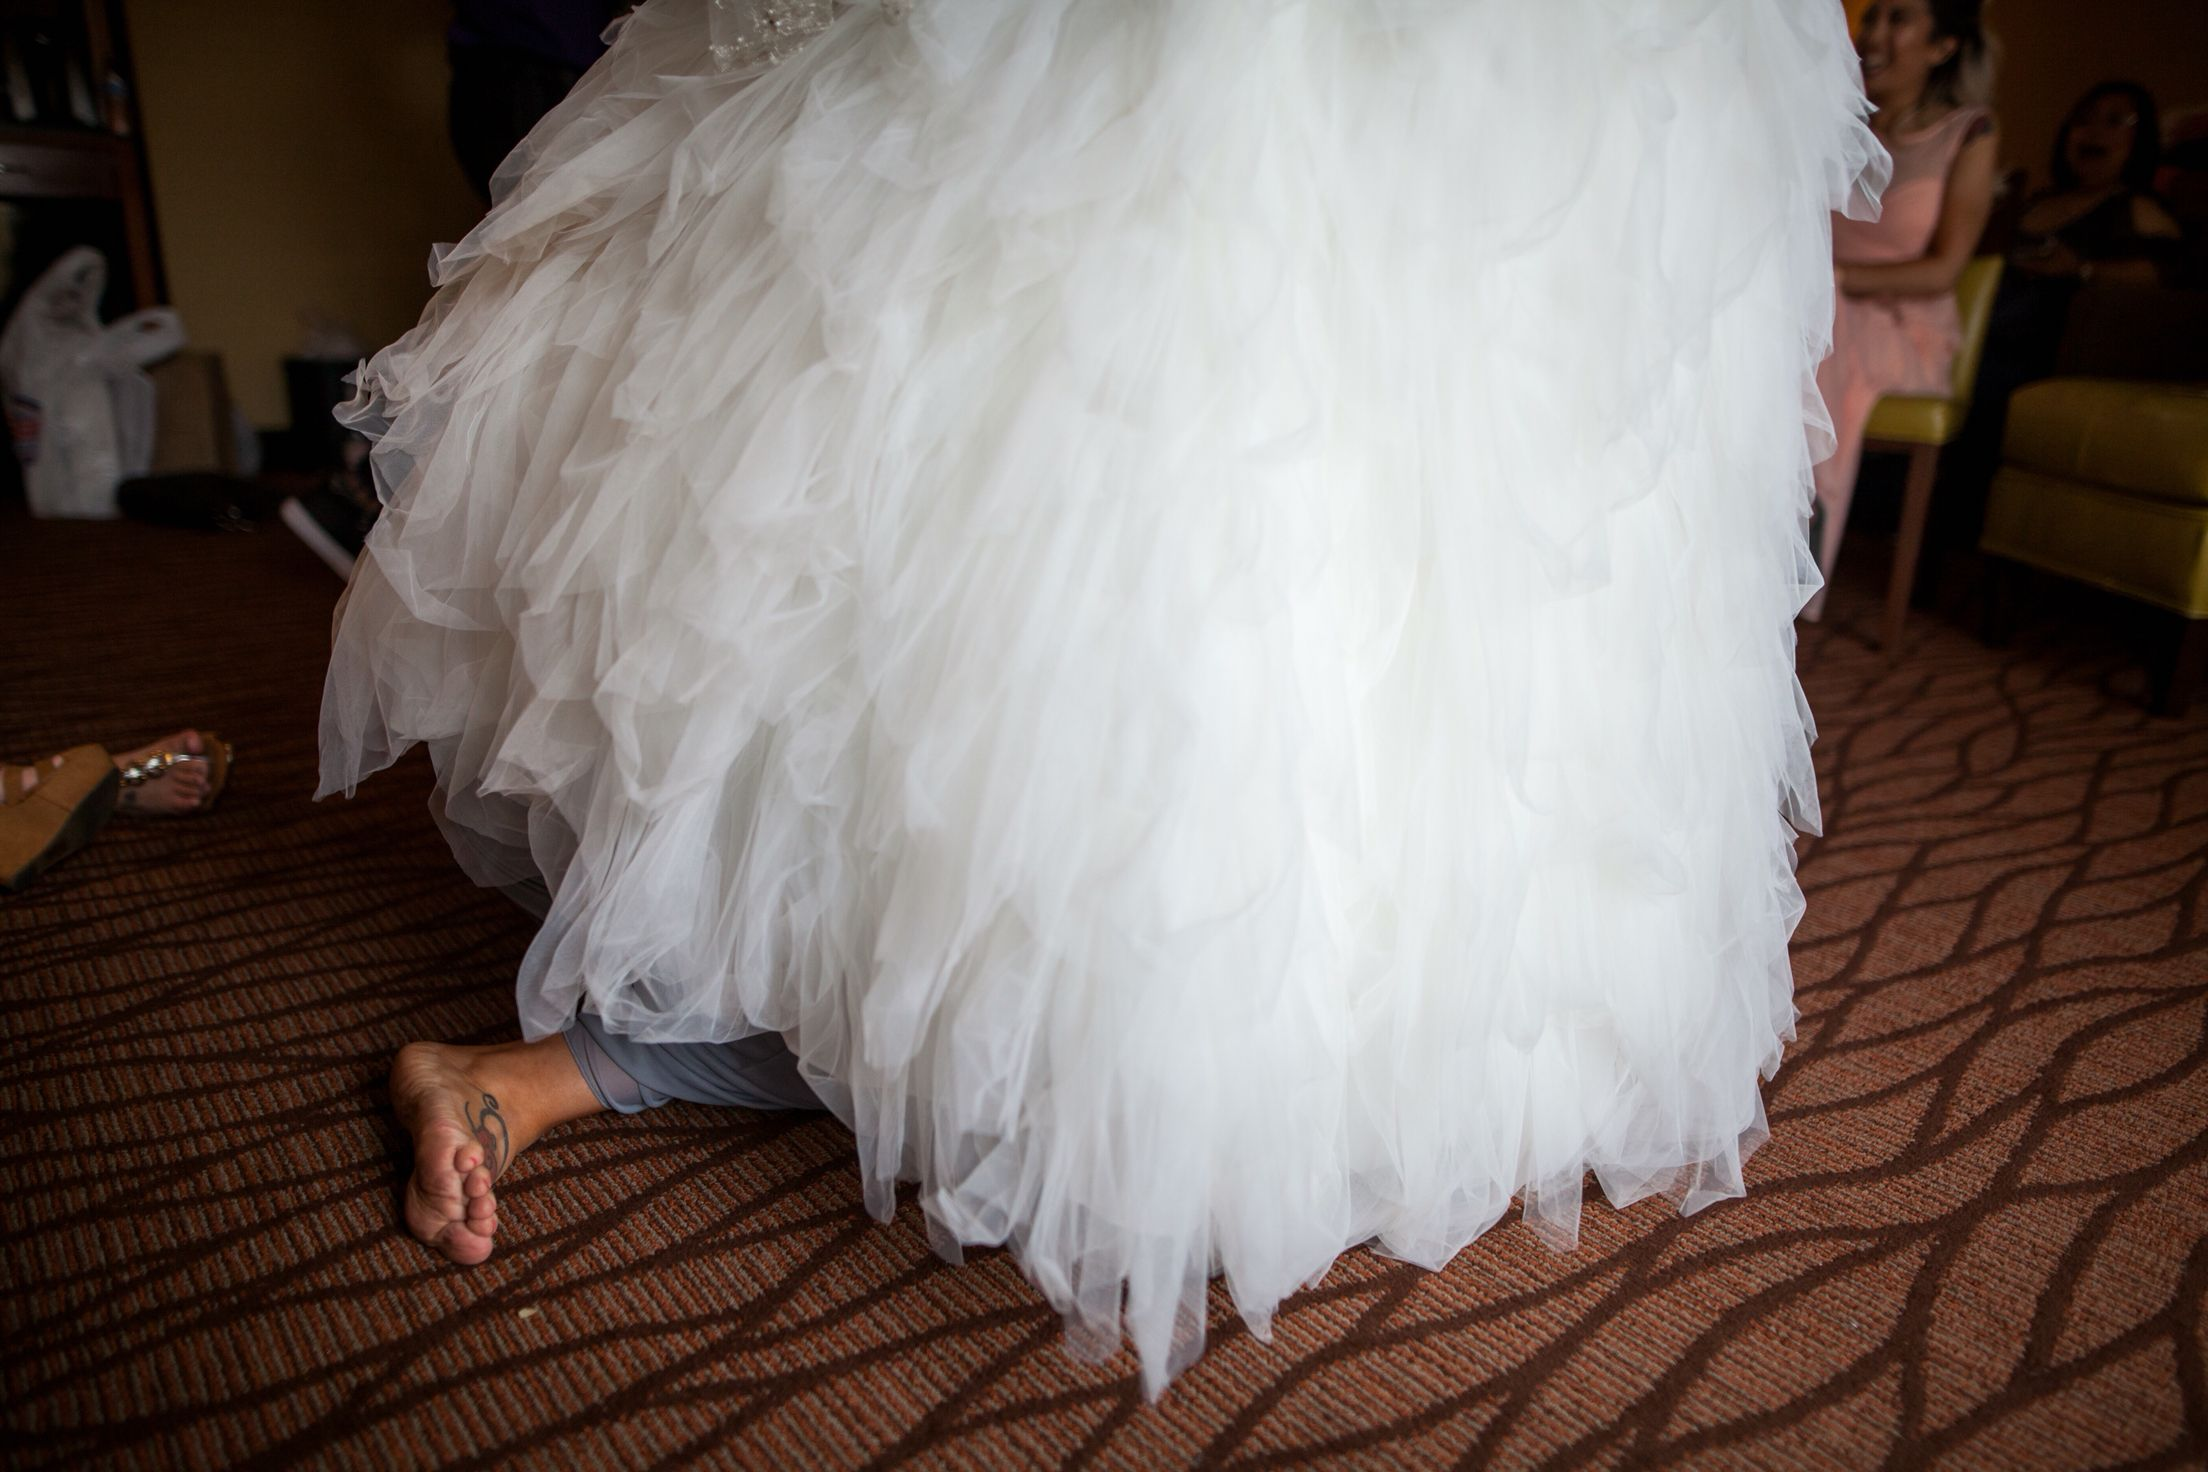 Maid of honor under brides gown to tie up corset strings